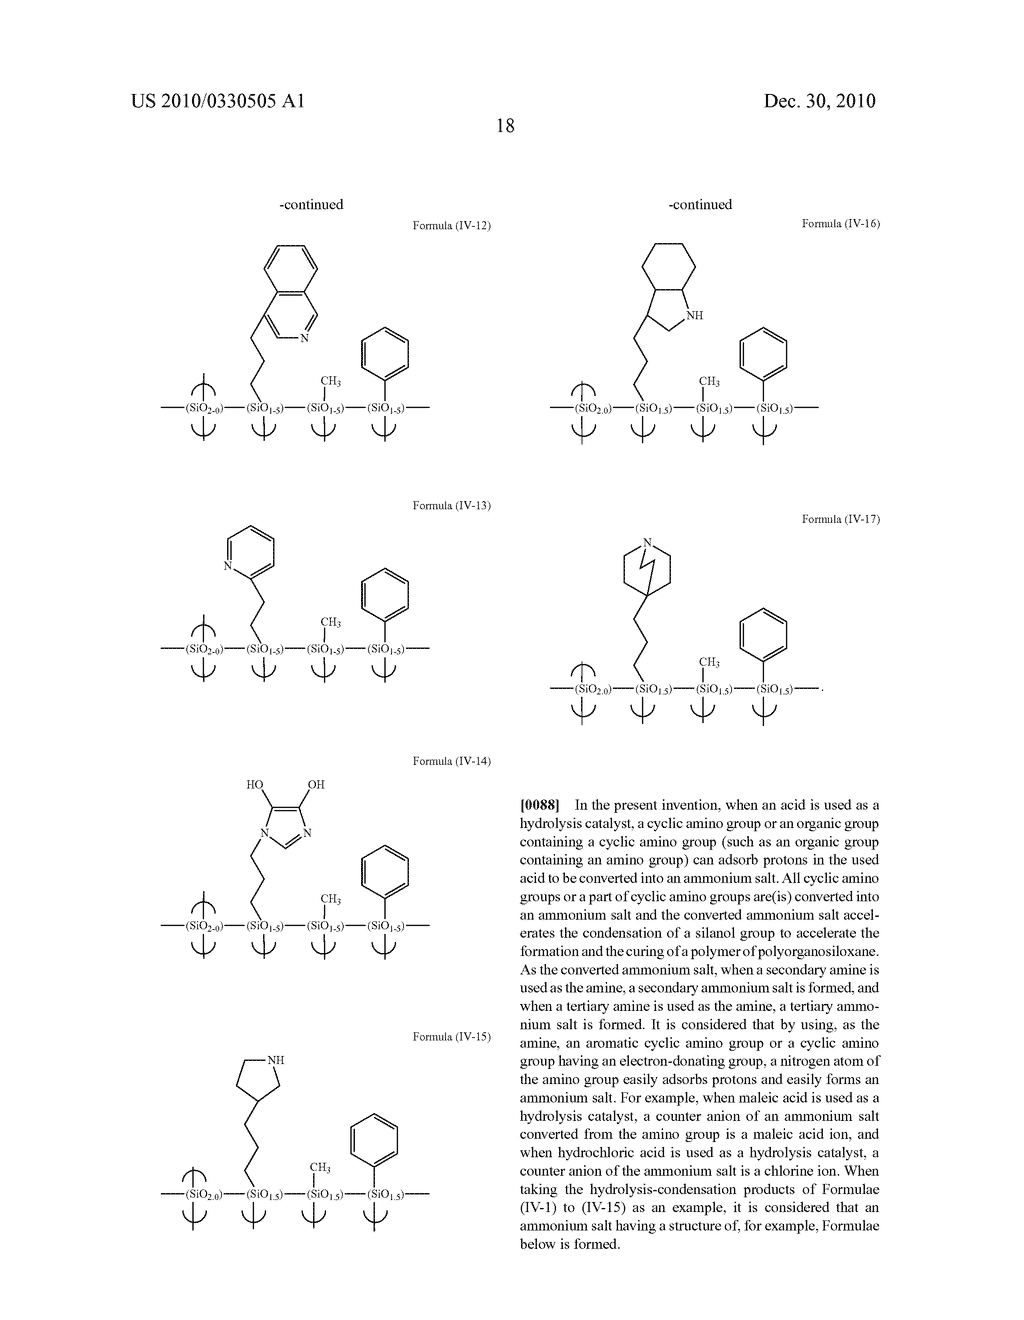 RESIST UNDERLAYER FILM FORMING COMPOSITION CONTAINING SILICONE HAVING CYCLIC AMINO GROUP - diagram, schematic, and image 21